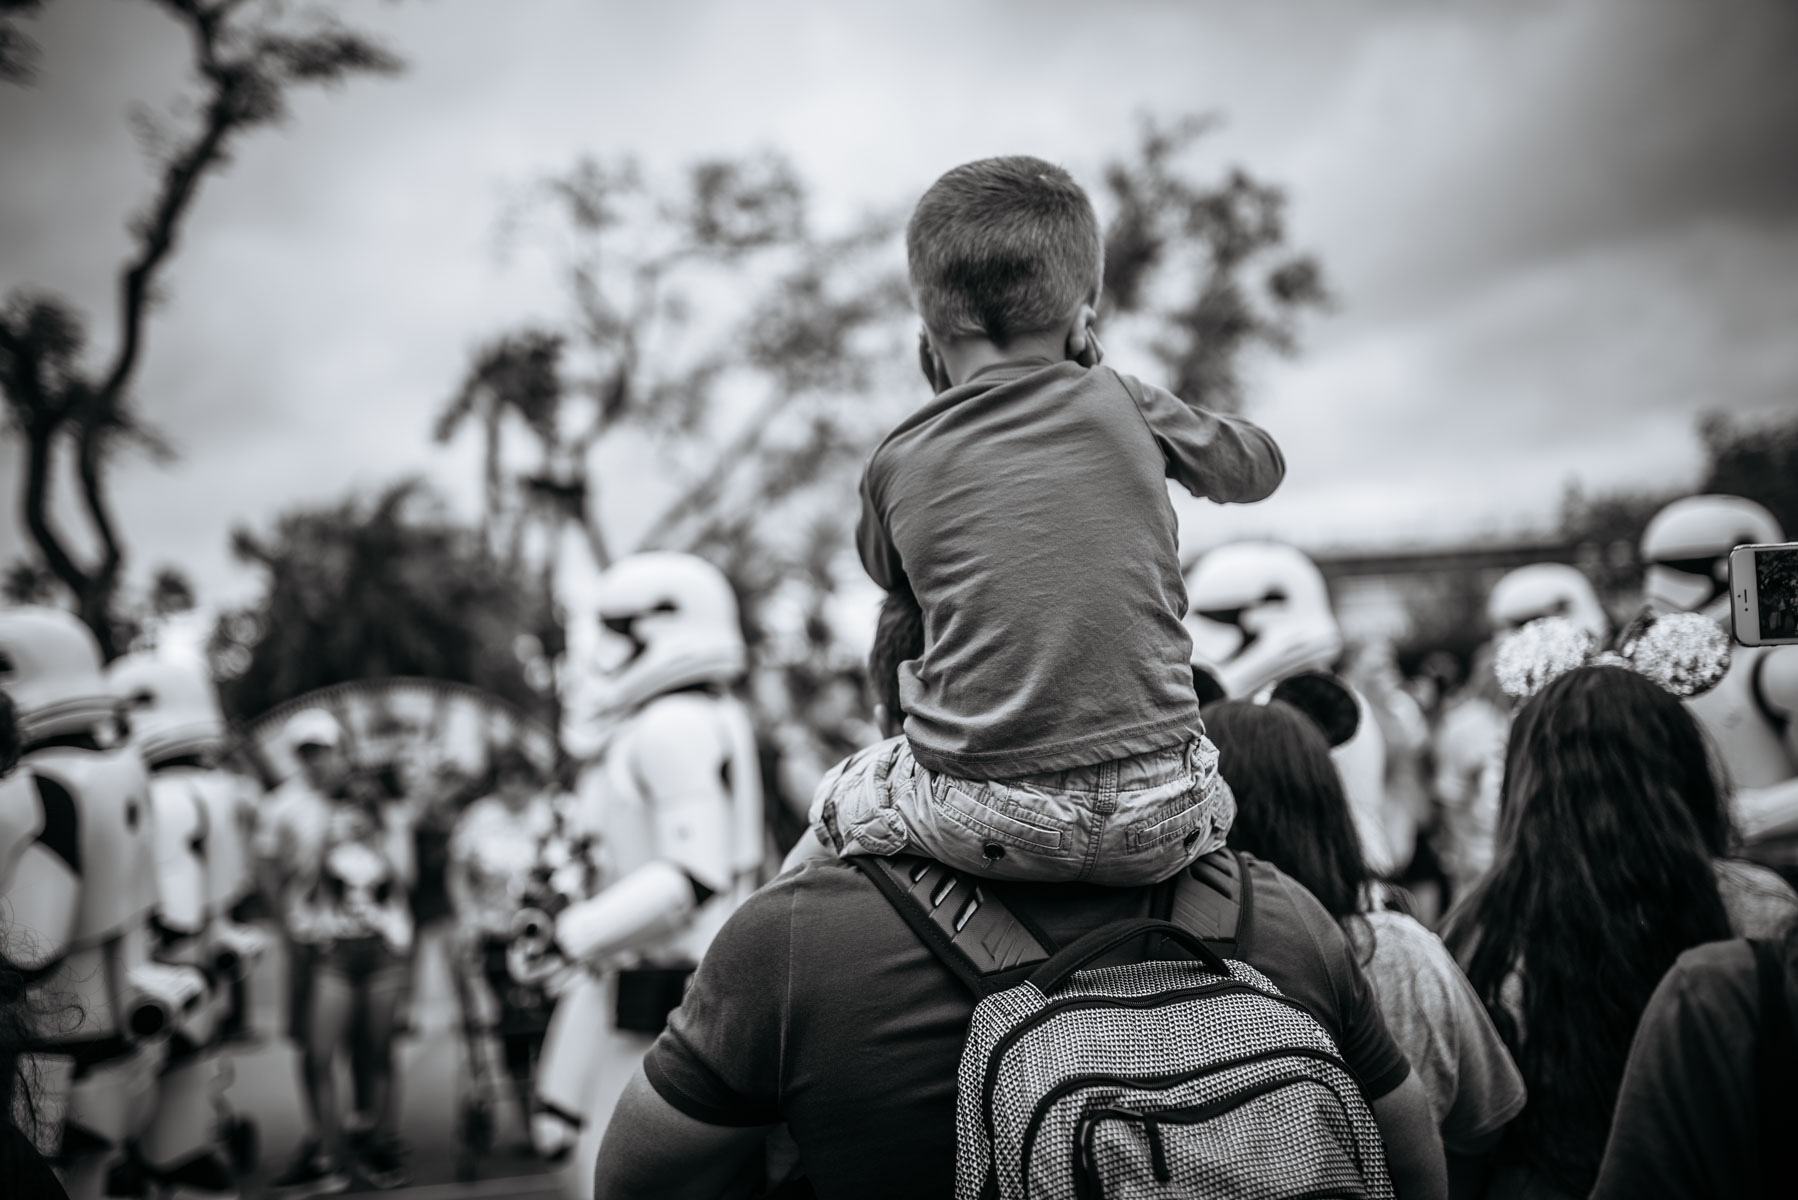 The Storm Trooper March (maybe a little loud for Anthony), but I thought it was awesome and I couldn't care less about Star Wars.